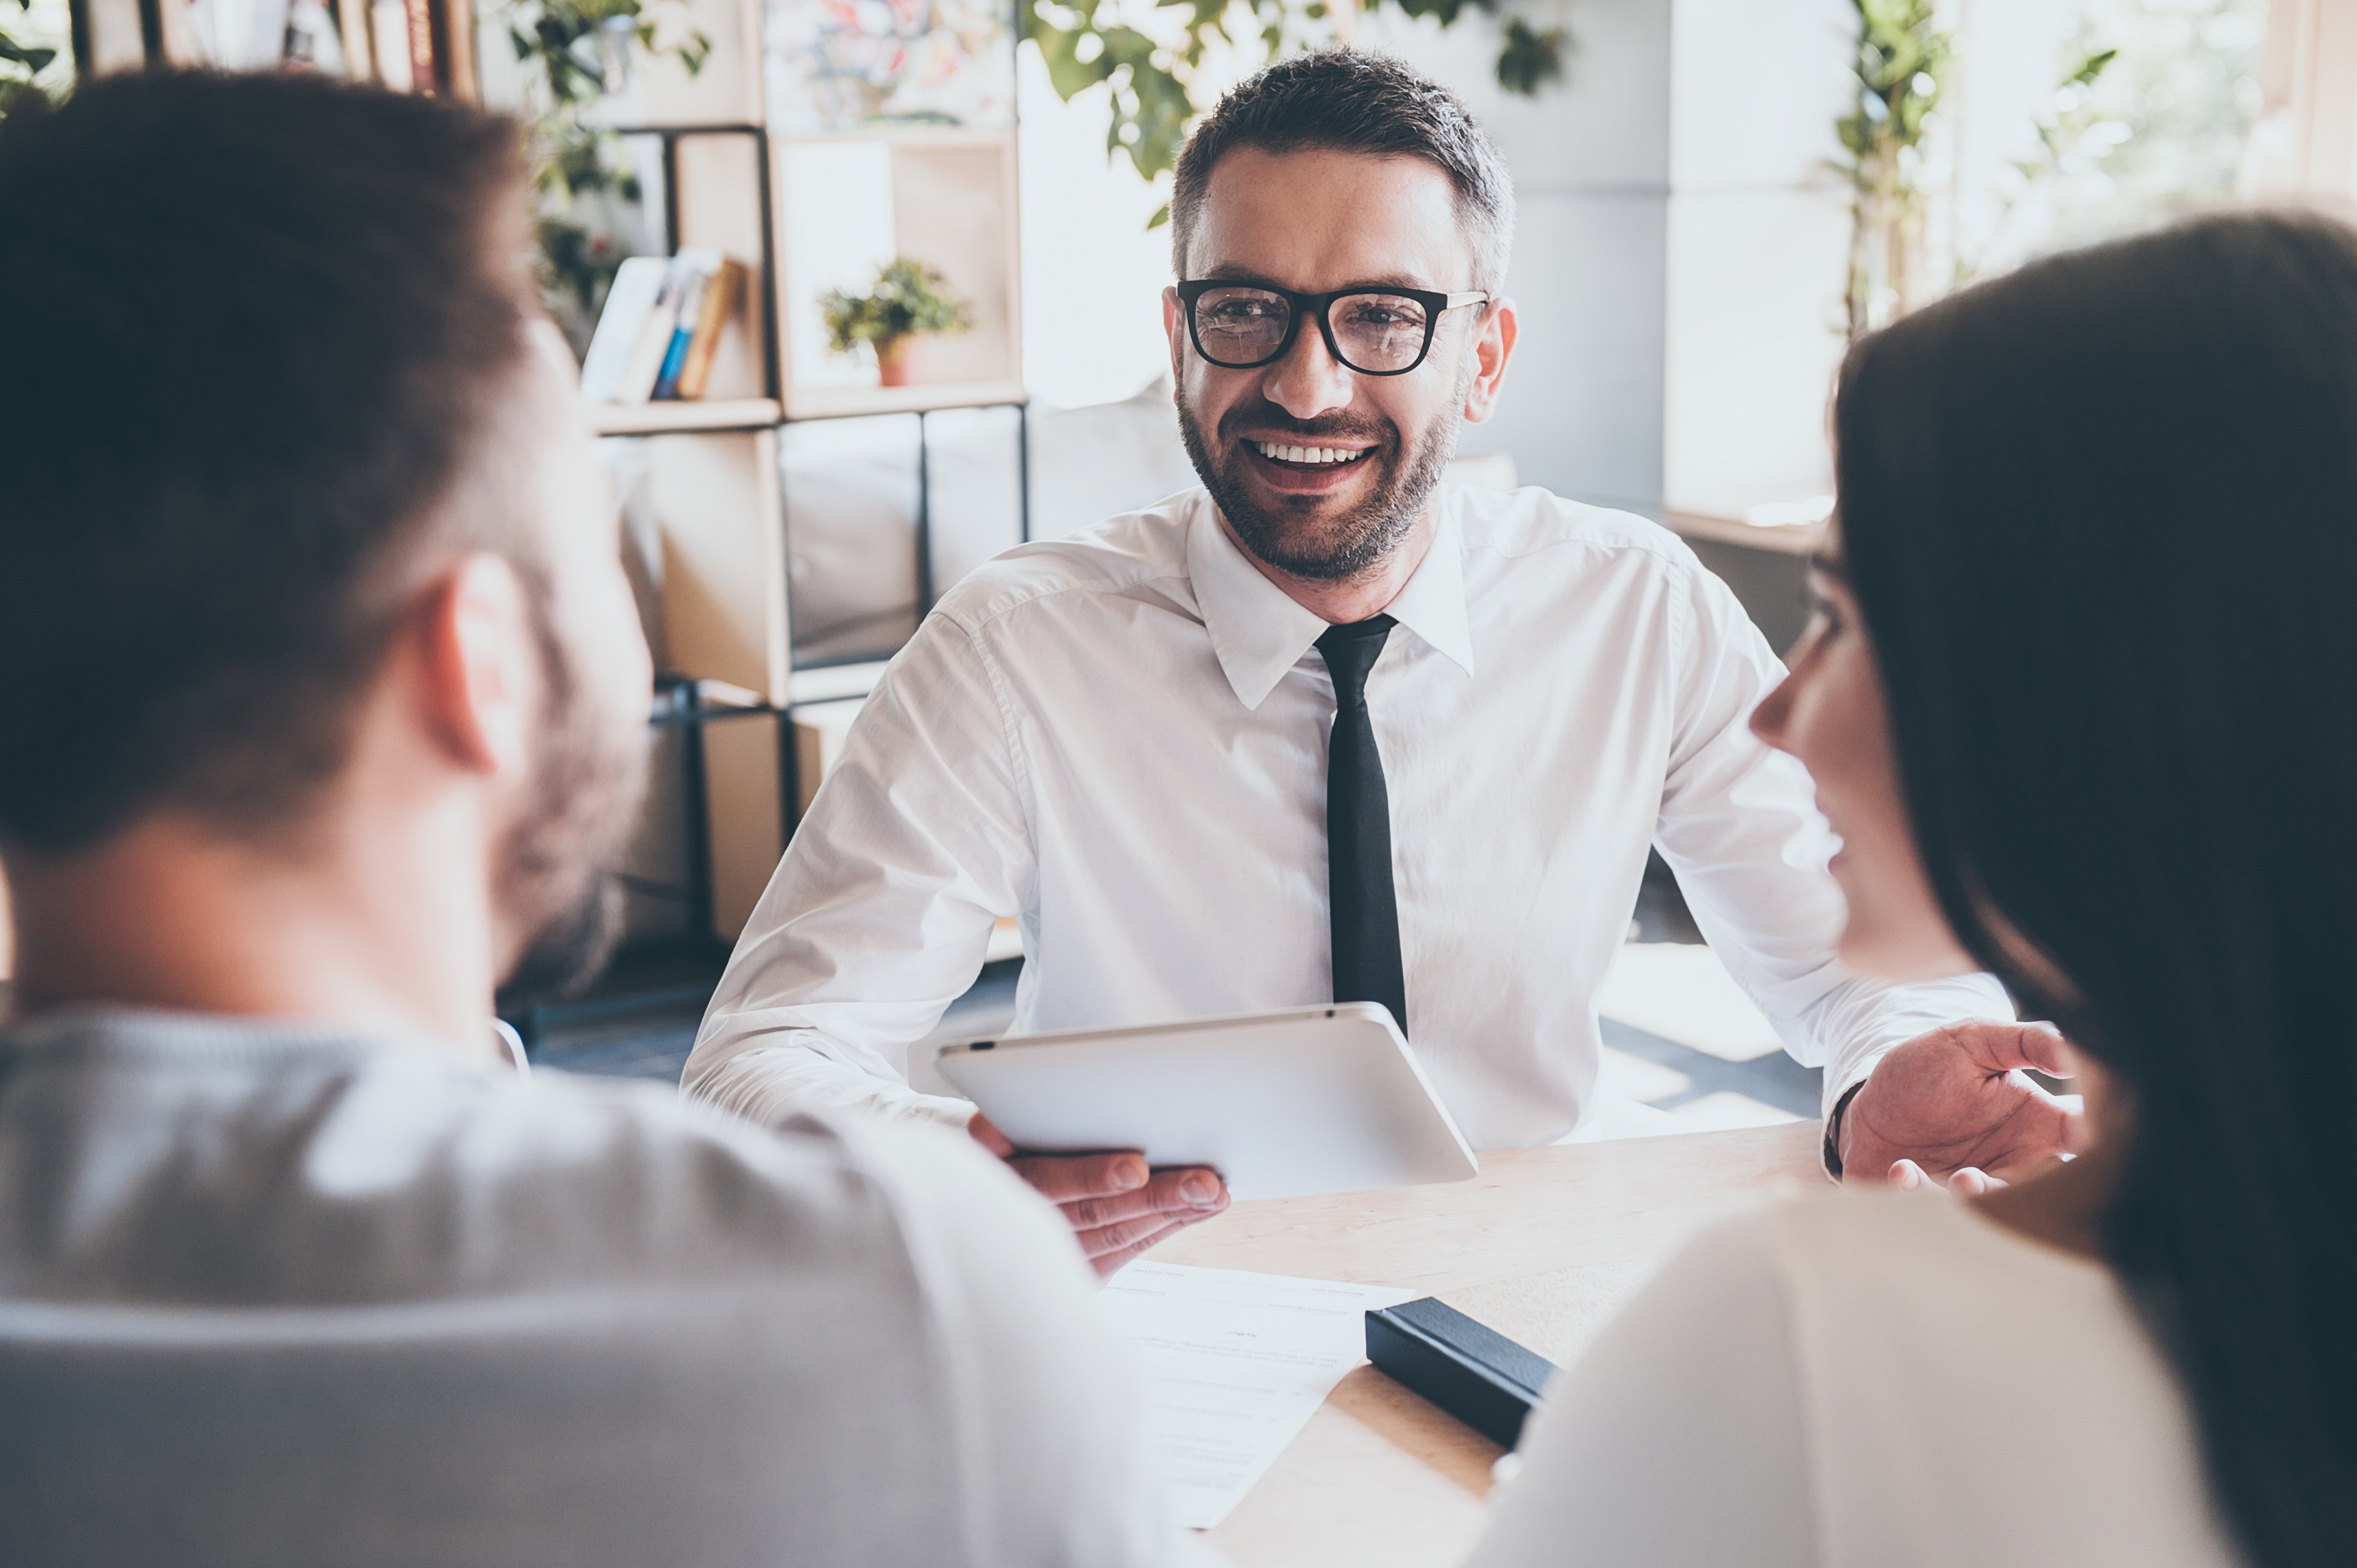 Find A Christian Financial Advisor: What Christian Investors Should Look For